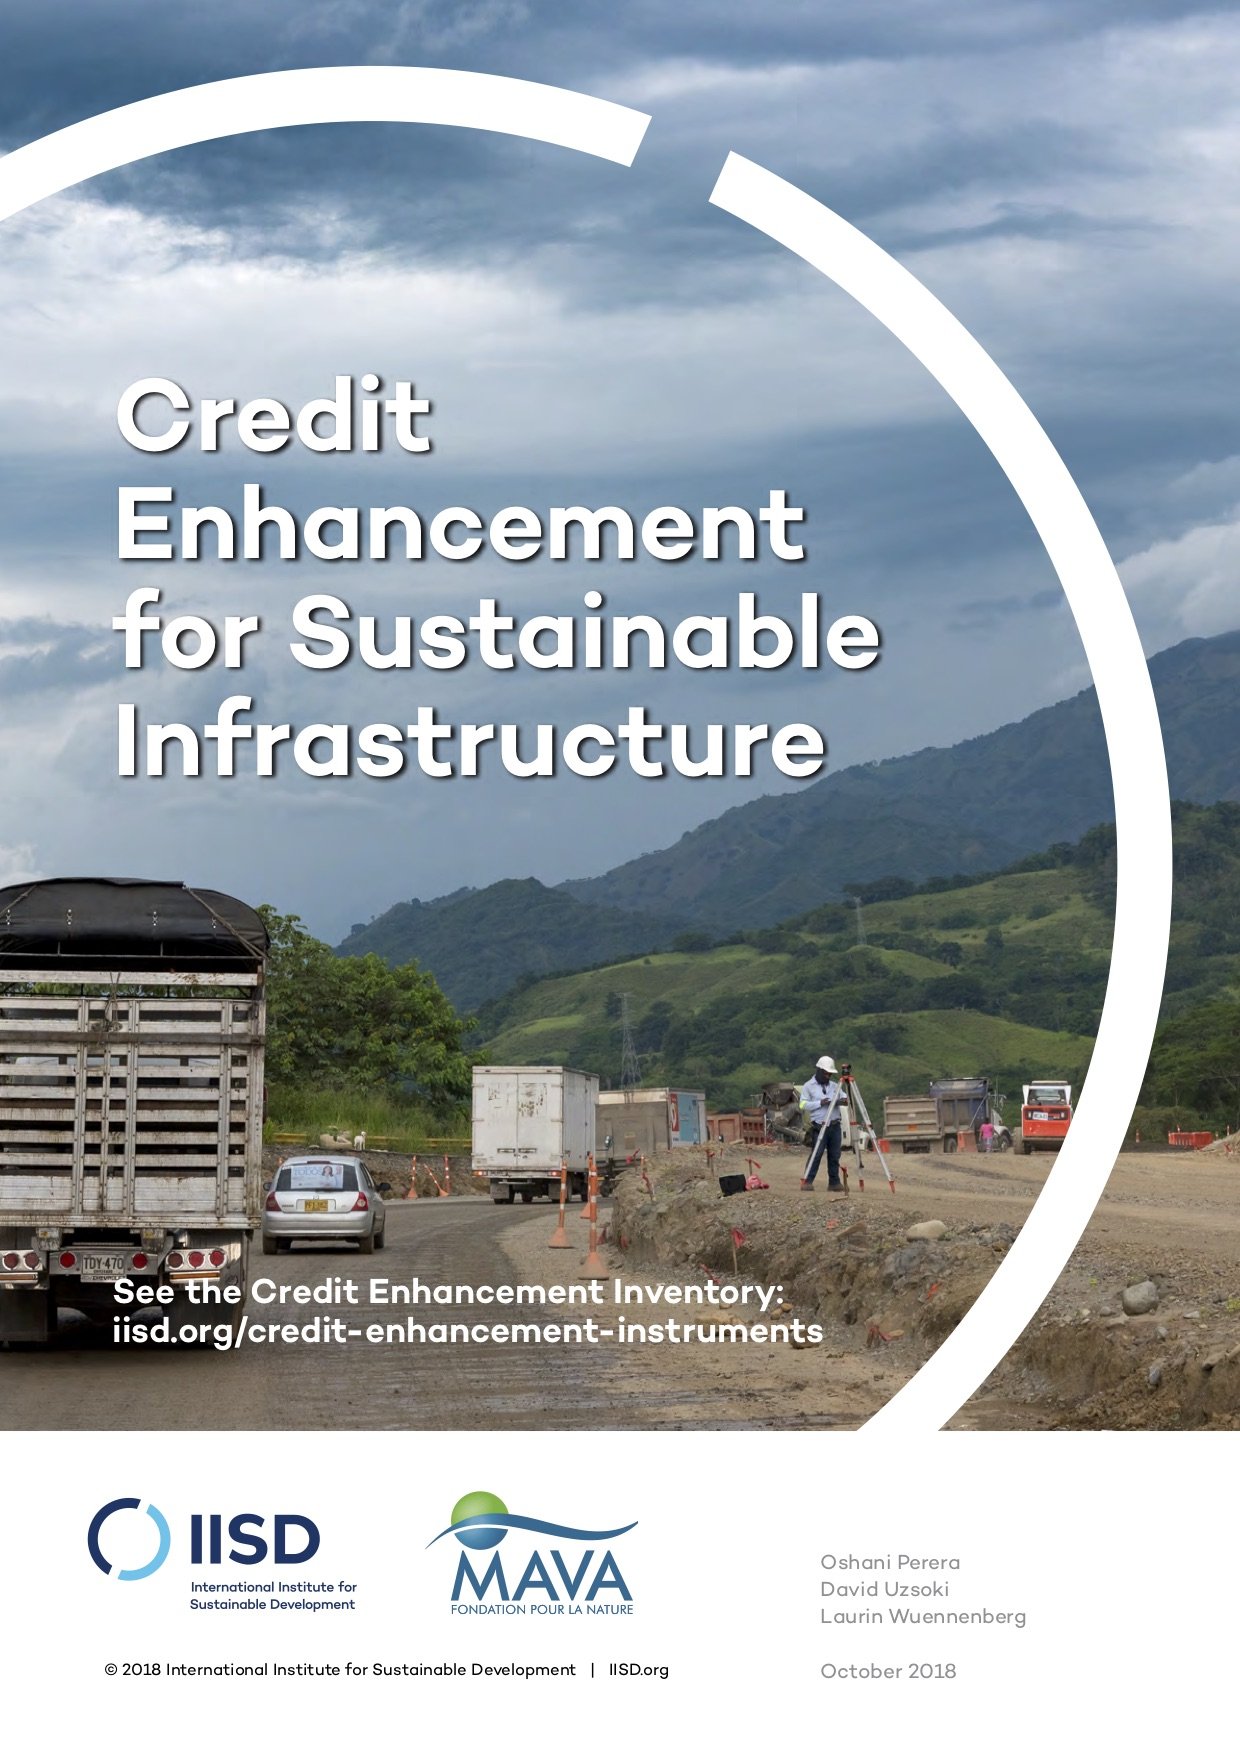 Credit Enhancement for Sustainable Infrastructure